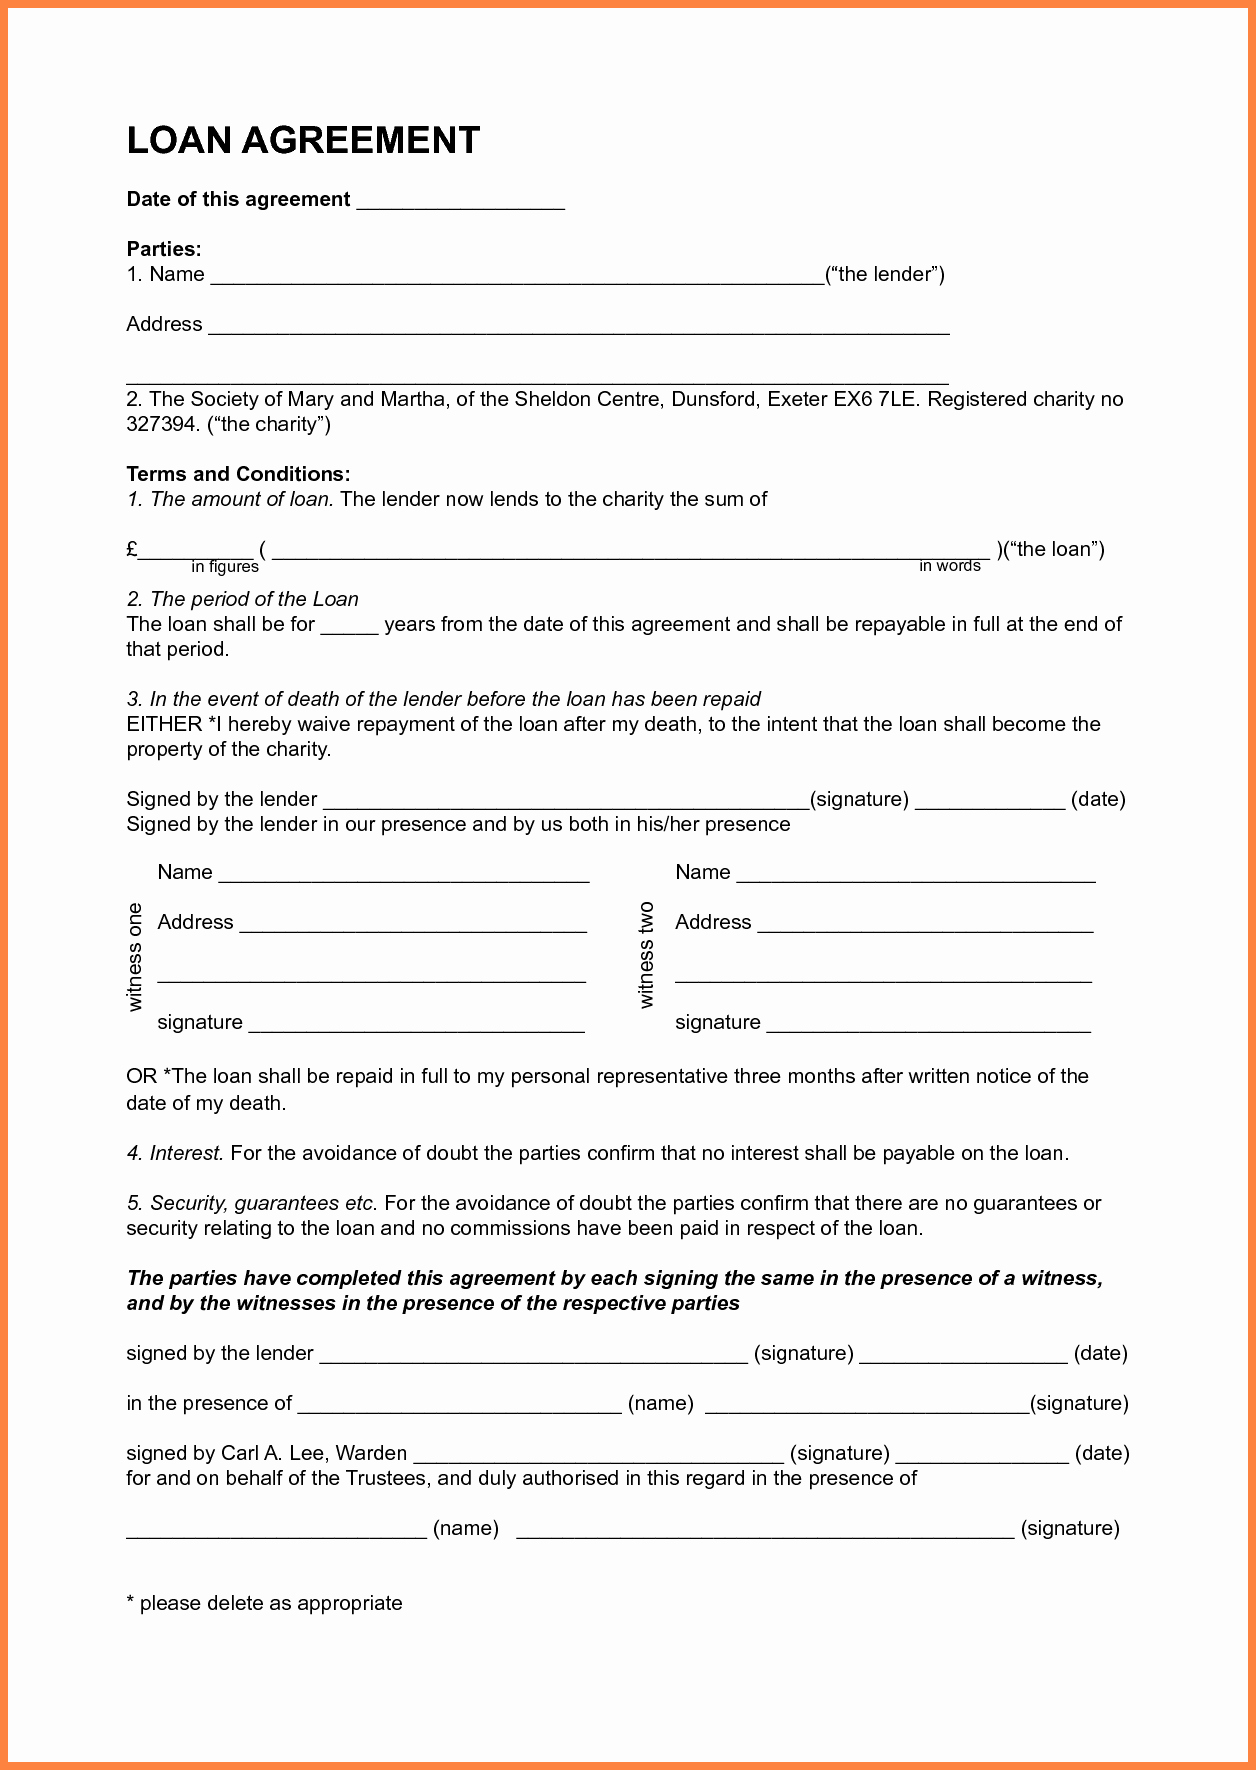 Personal Loan Contract Template Fresh 7 Template Loan Agreement Between Family Members